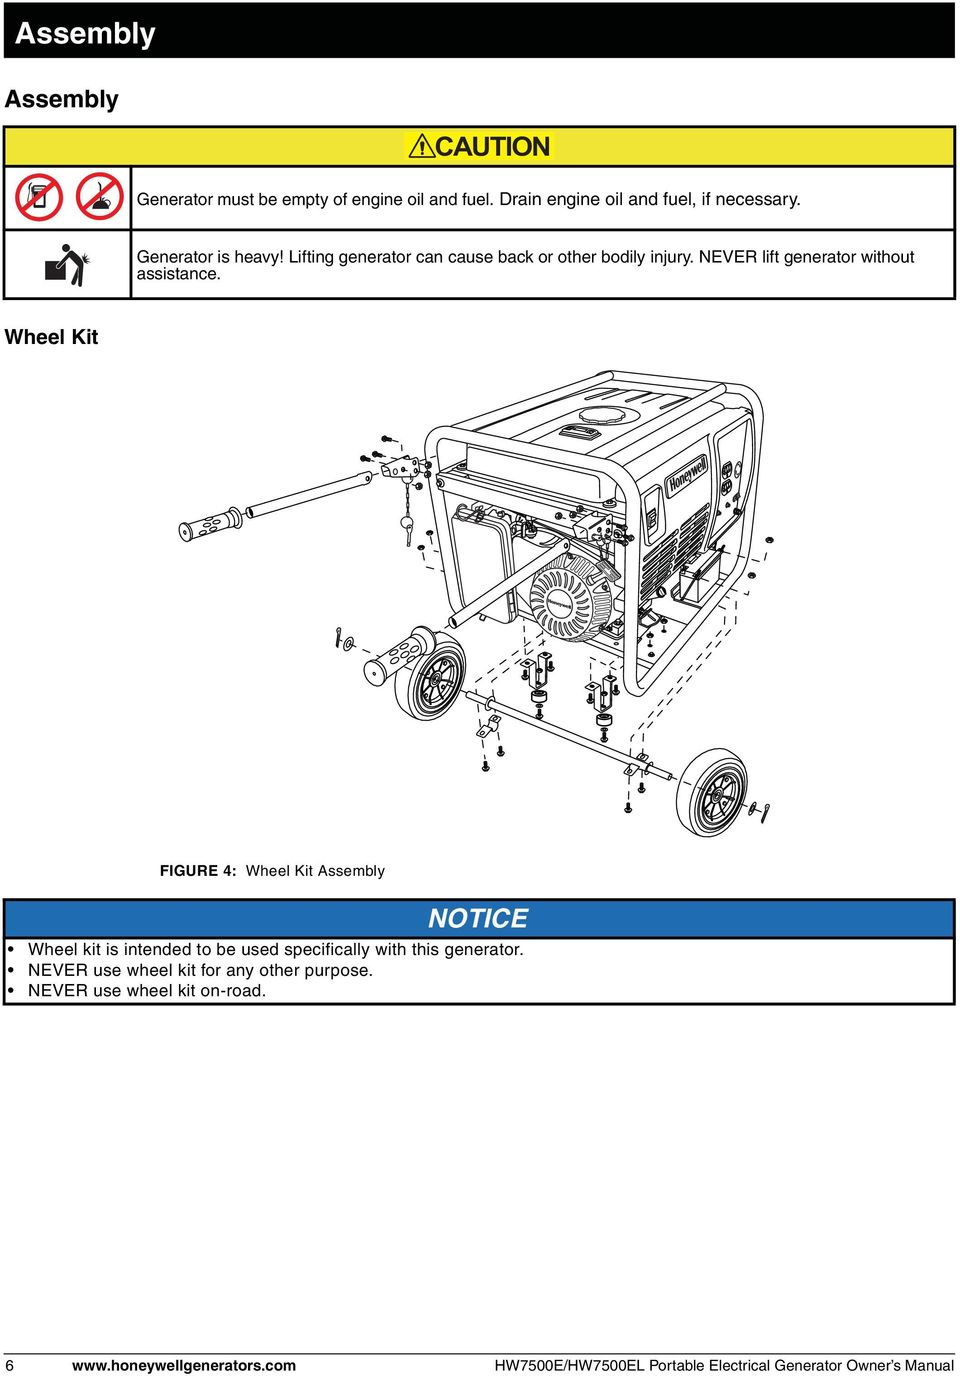 Wheel Kit FIGURE 4: Wheel Kit Assembly NOTICE Wheel kit is intended to be used specifically with this generator.